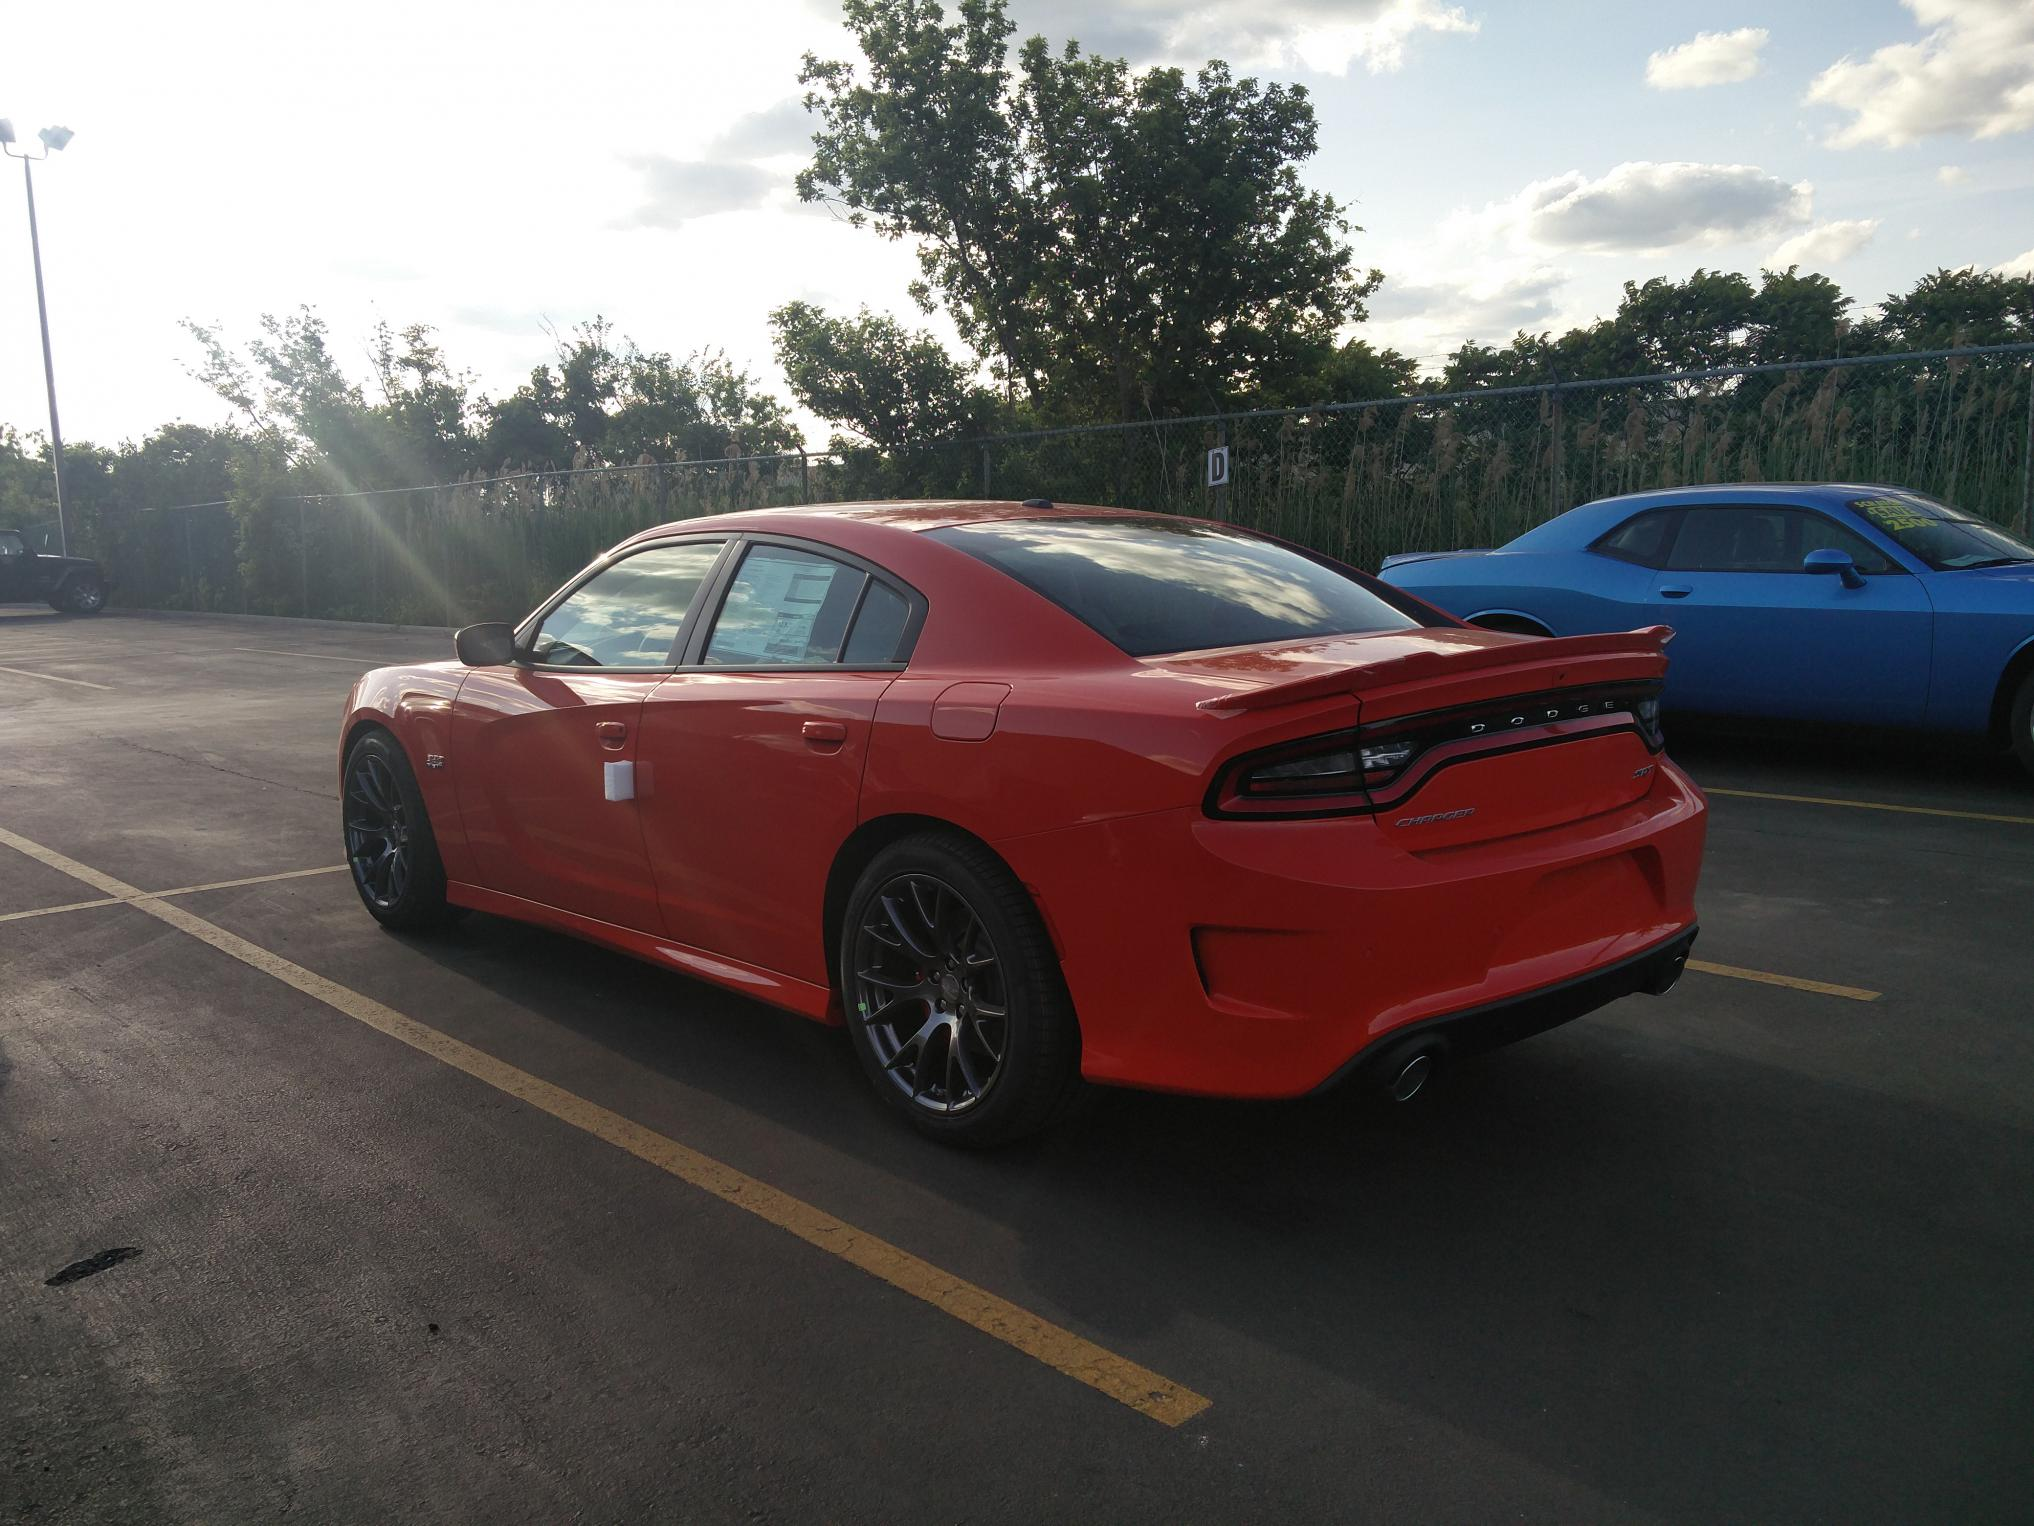 2016 Charger SRT 392 Go Mango PICTURES Dodge Charger Forums